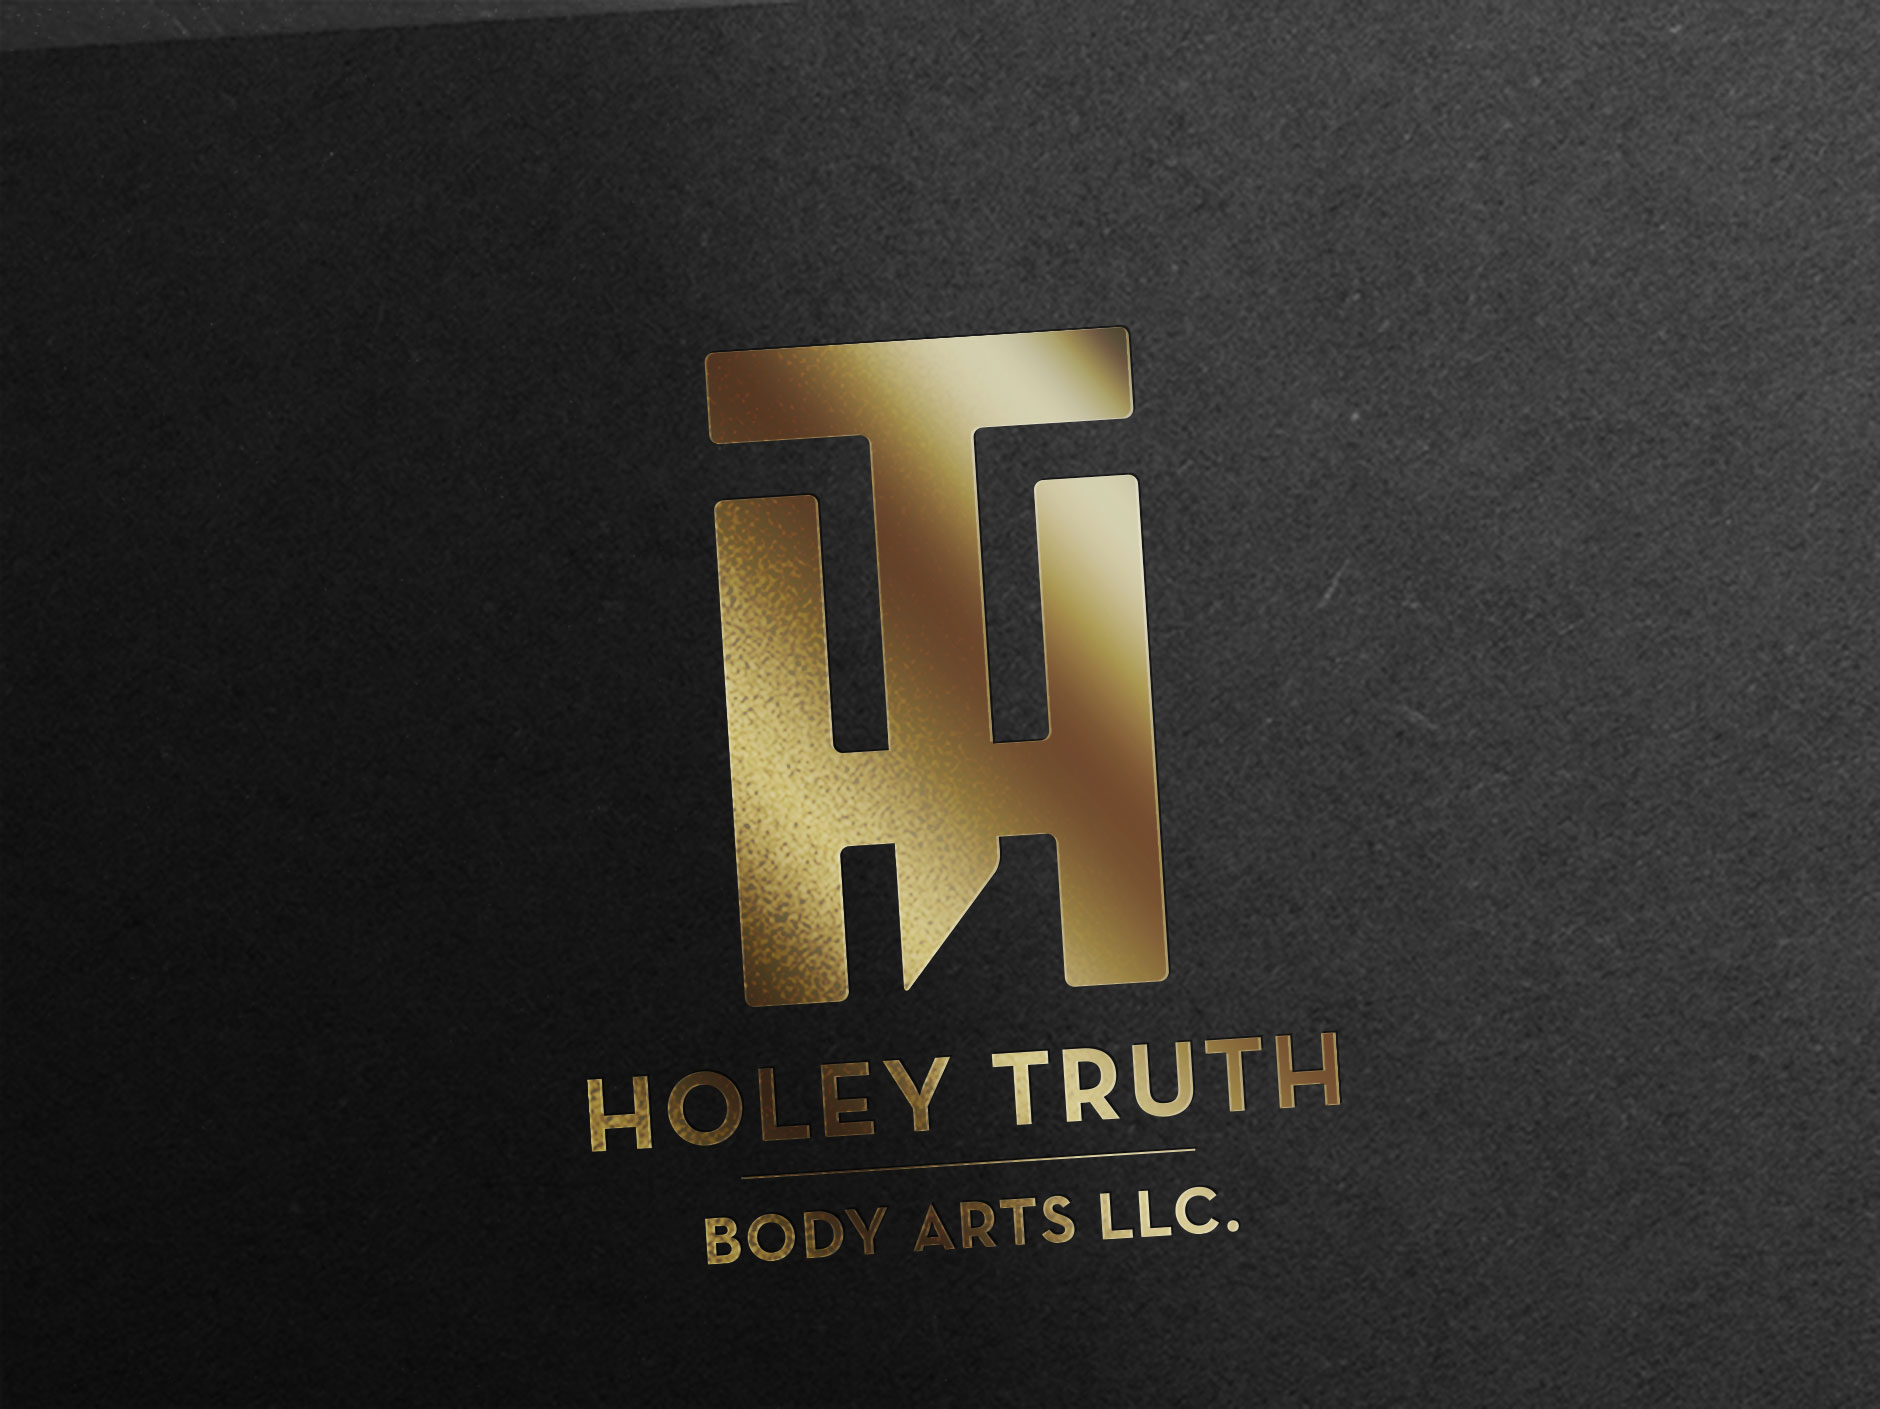 Project Holey Truth